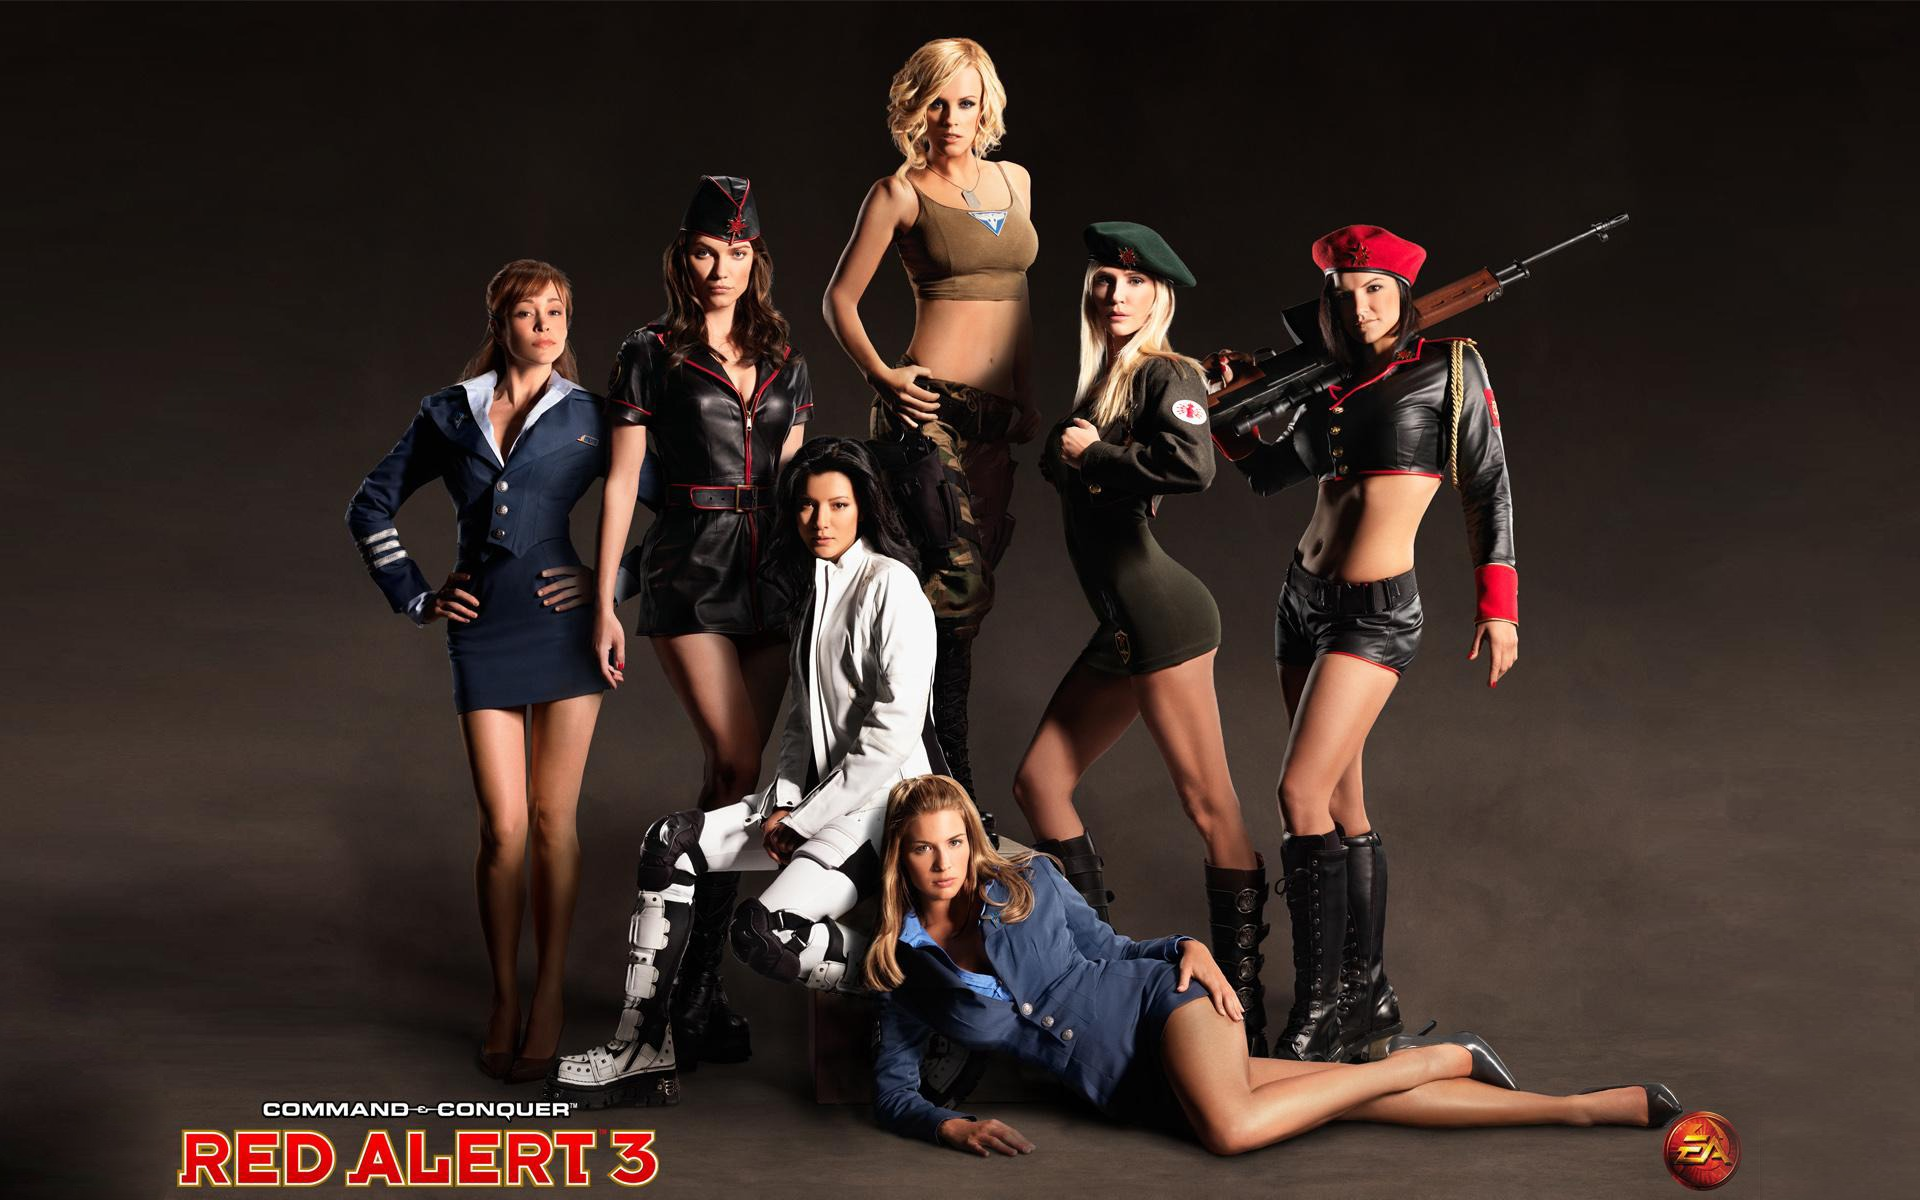 Red Alert 3 Girls Wallpaper Red Alert 3 Games Wallpapers In Jpg